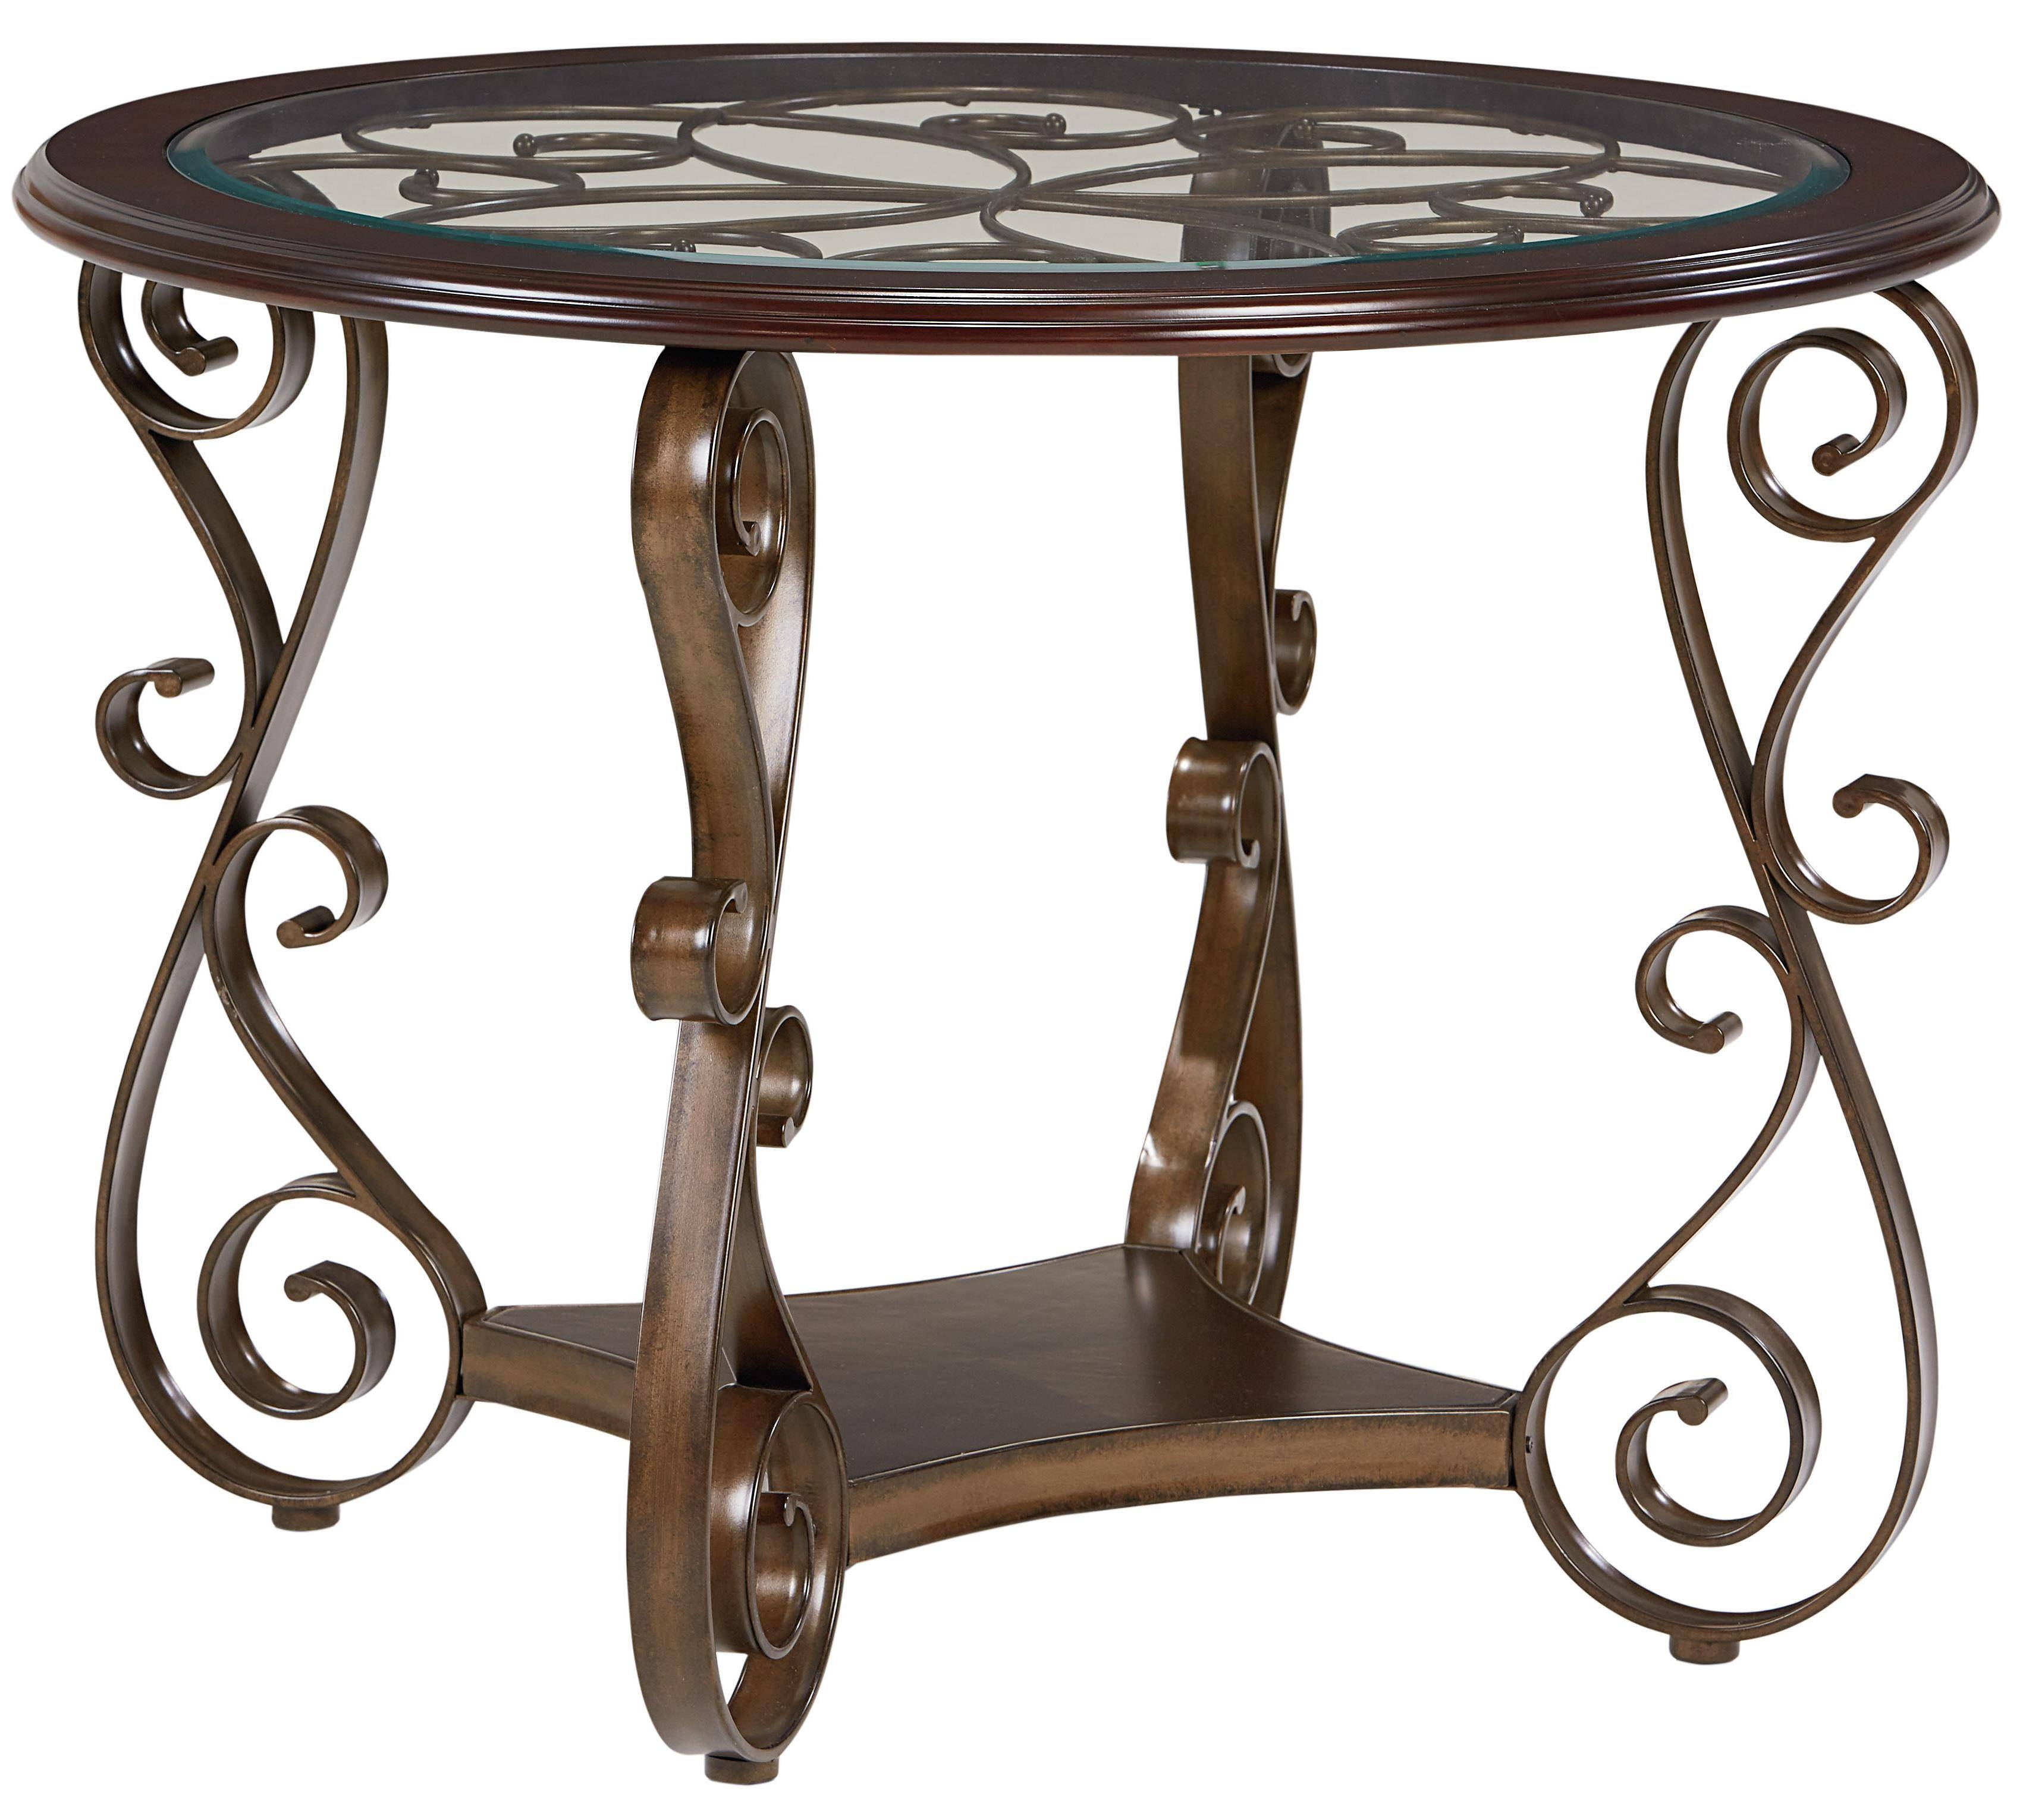 Standard Furniture Bombay Round Counter Height Table   Wayside Throughout Bombay Coffee Tables (Photo 27 of 30)